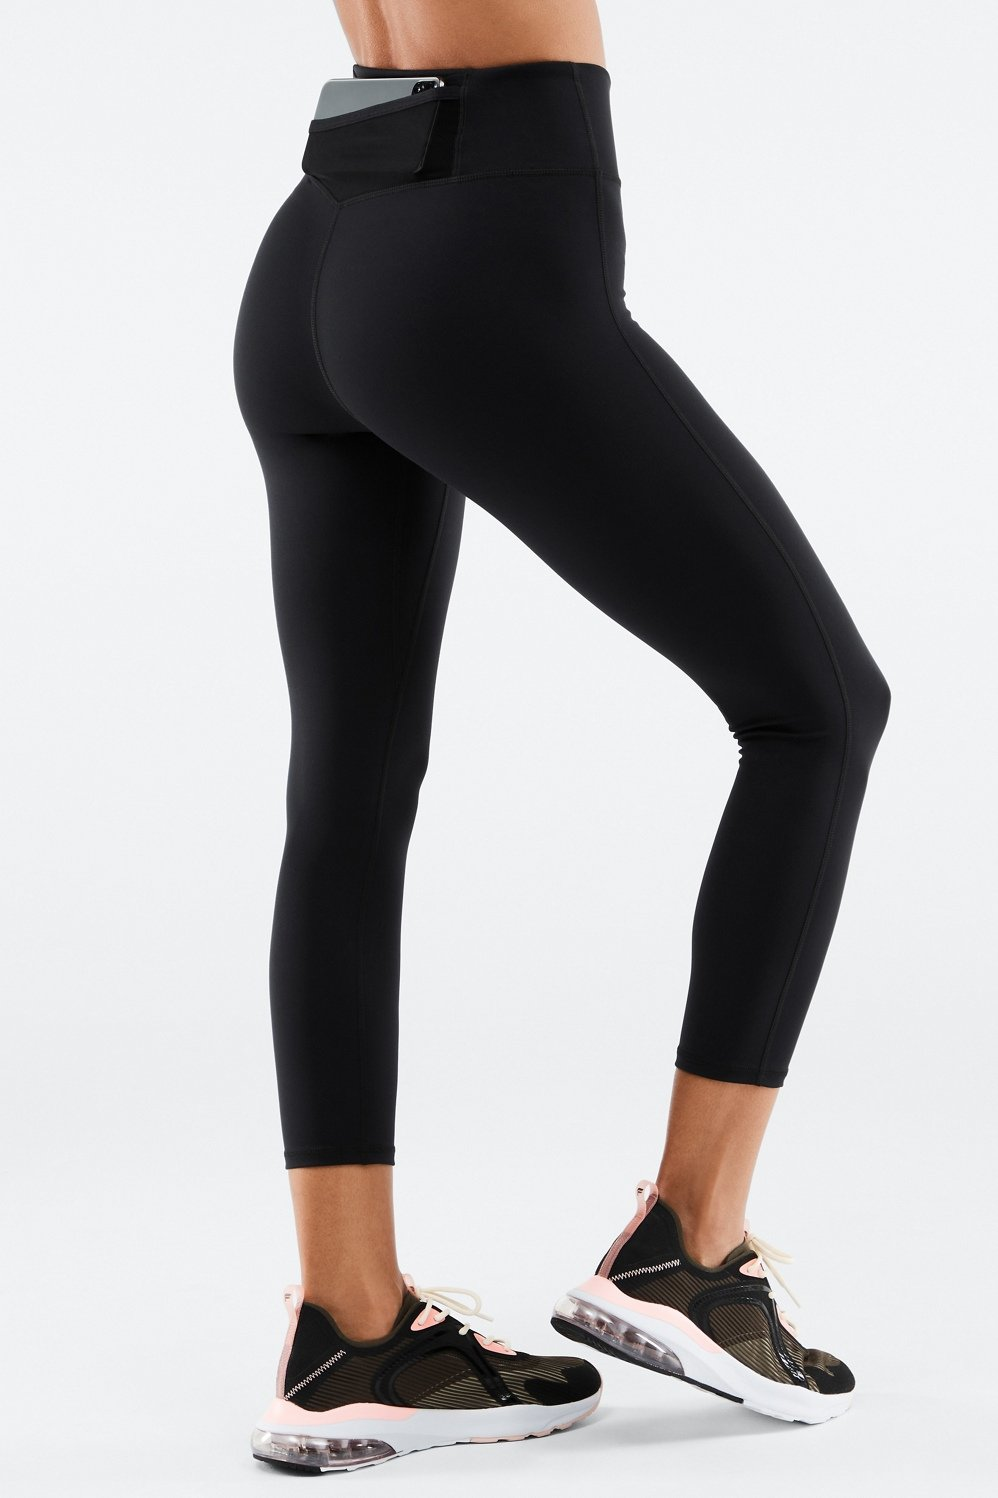 c3f0779baab32b Trinity High-Waisted Pocket Capri - Fabletics